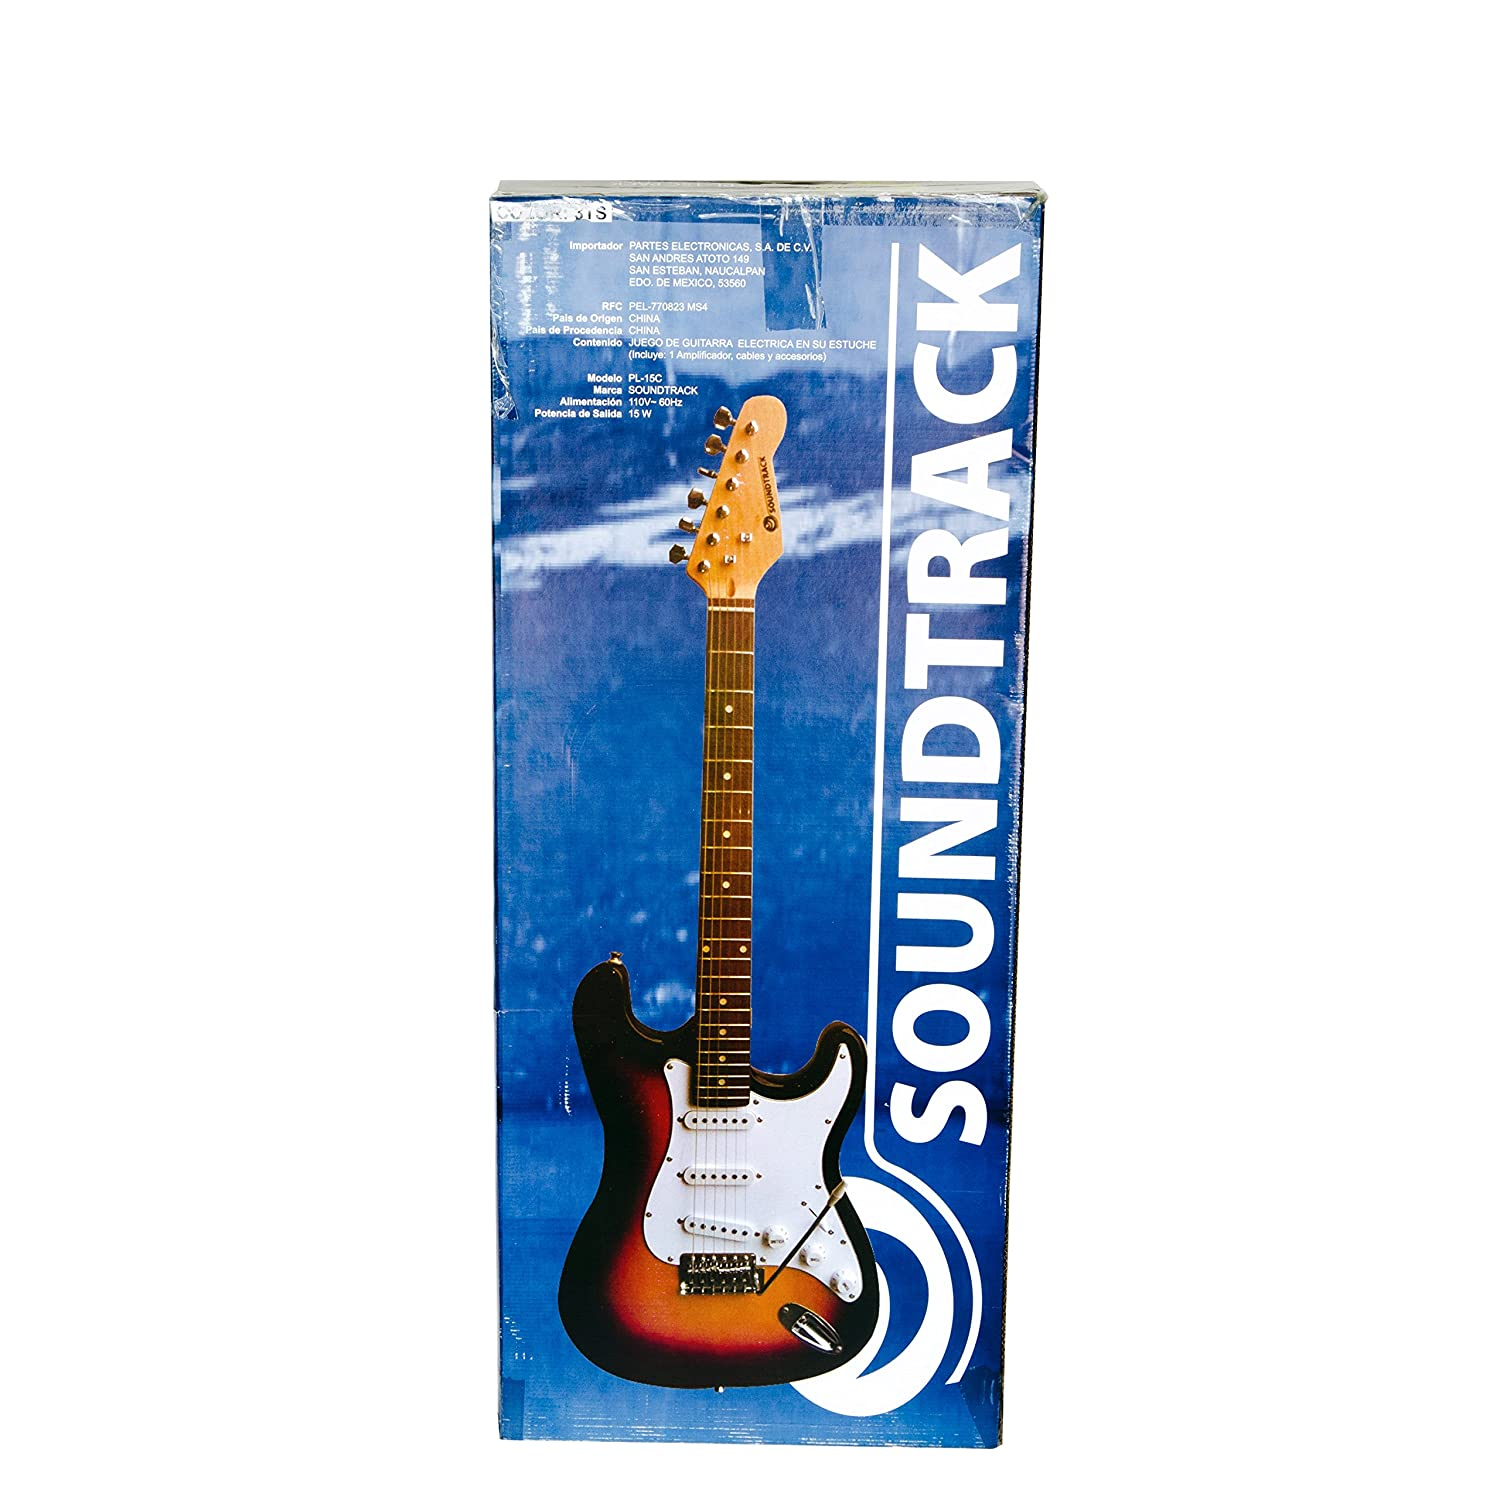 Amazon.com: Soundtrack Pro Audio PL-15C PACK Electric Guitar Pack, Sunburst: Musical Instruments